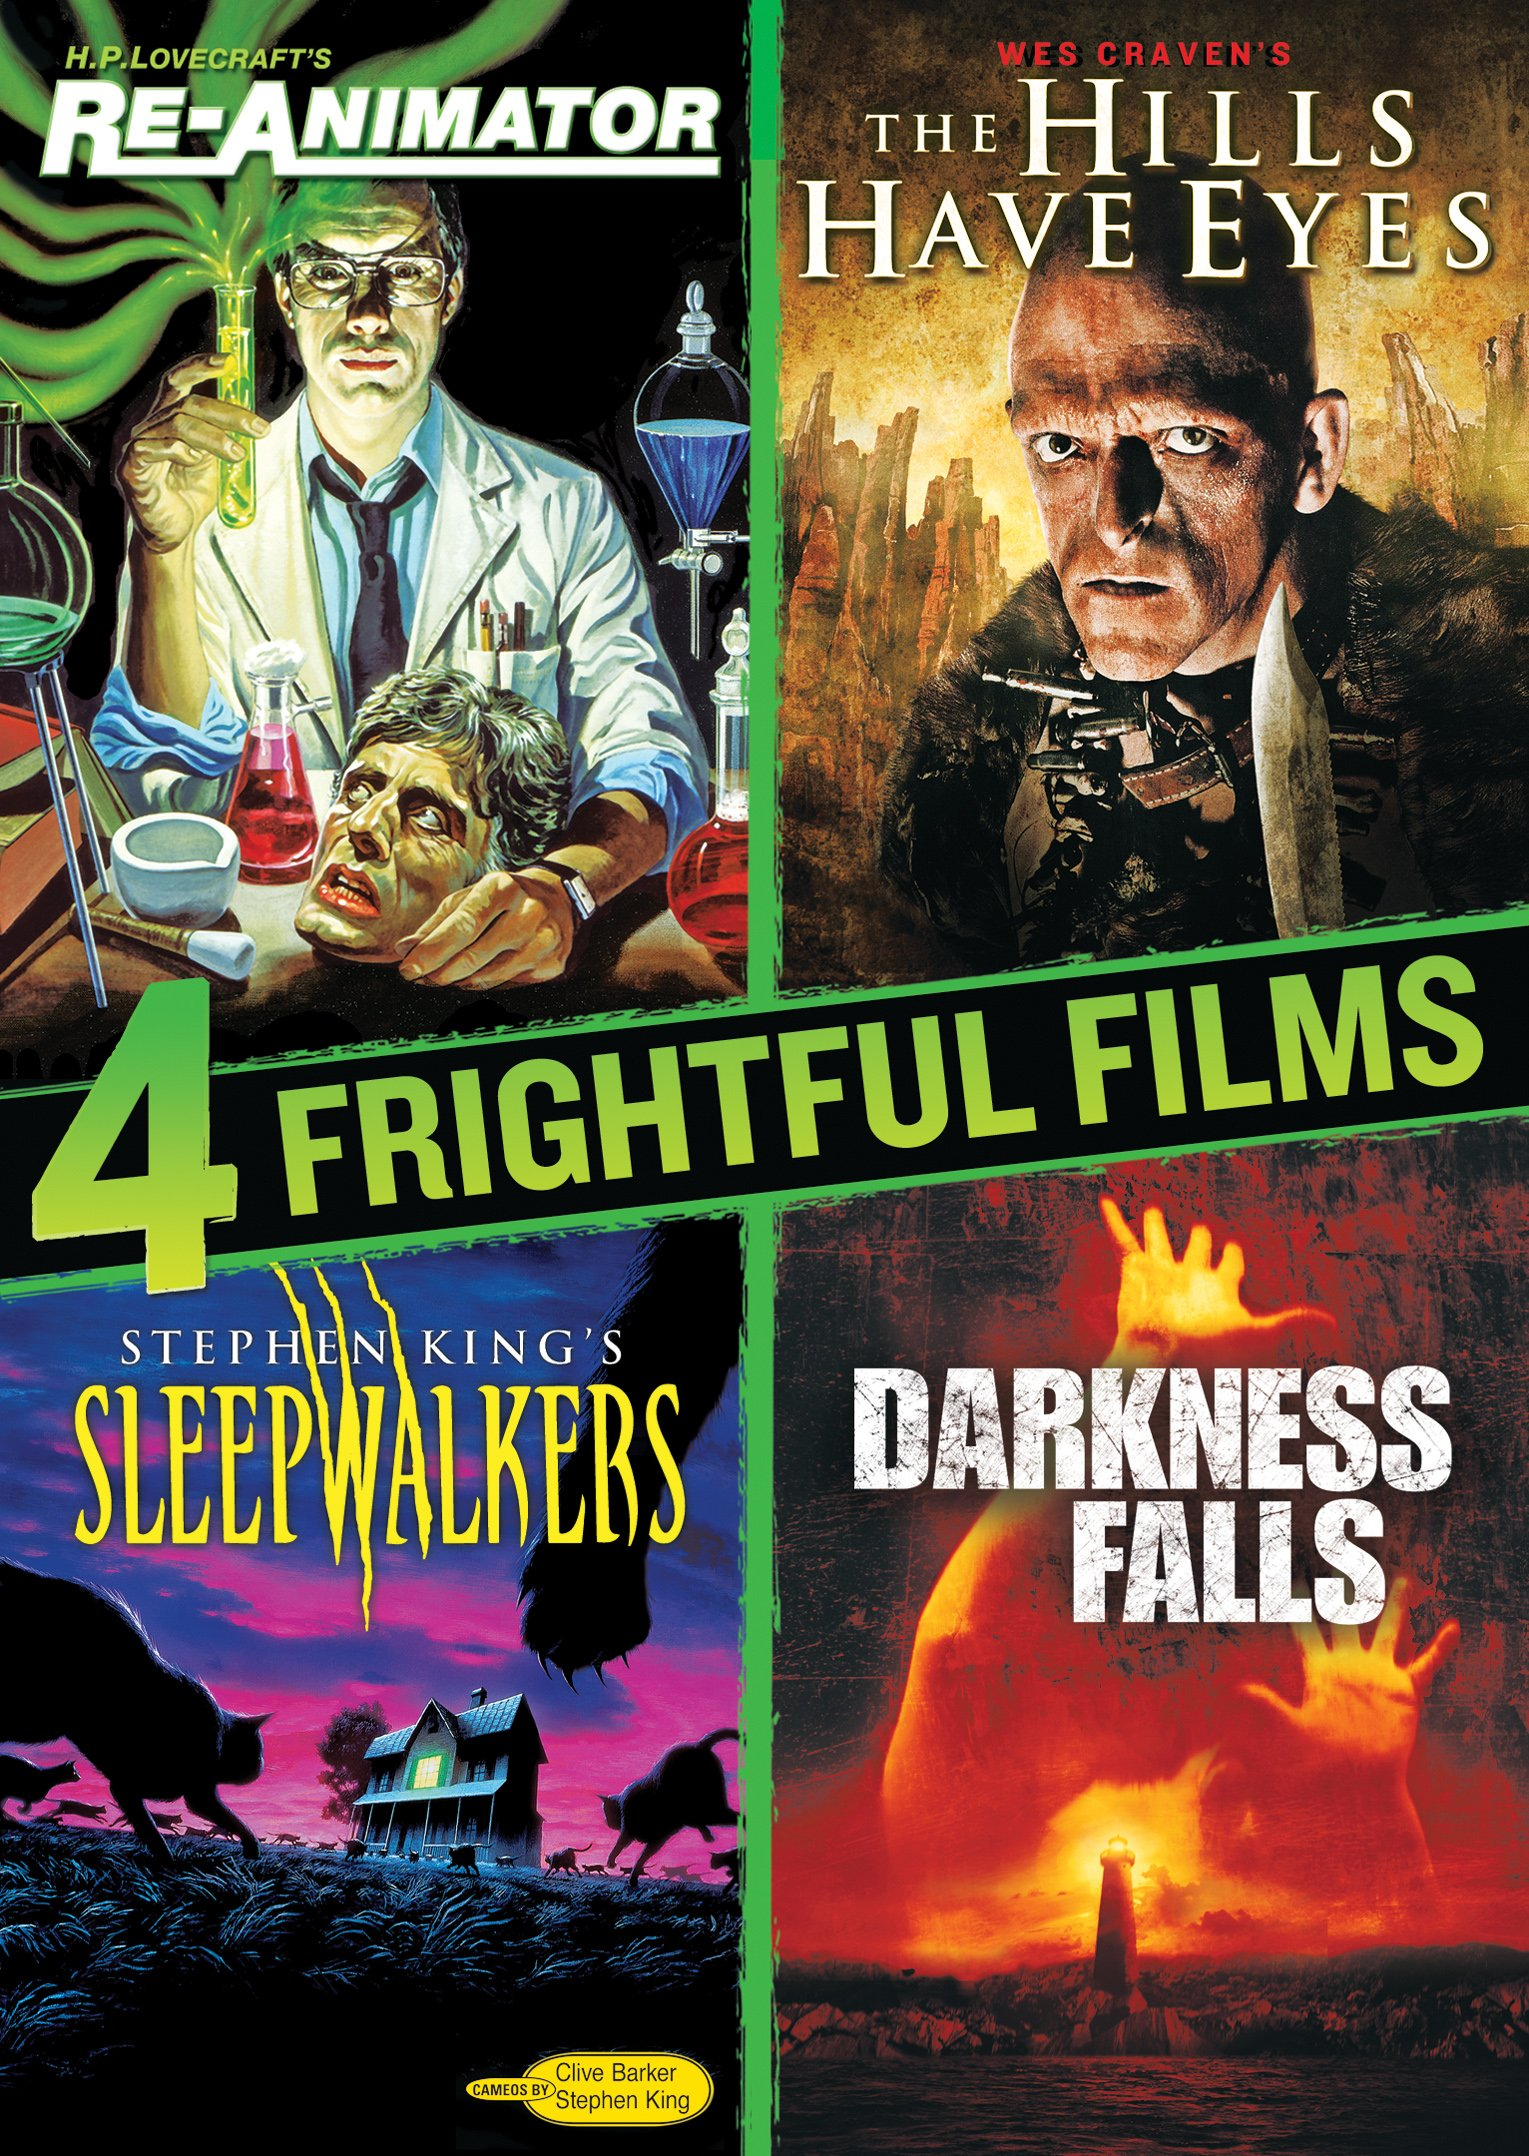 4 Frightful Films Collection (Re-animator / Hills Have Eyes / Darkness Falls / Sleepwalkers)